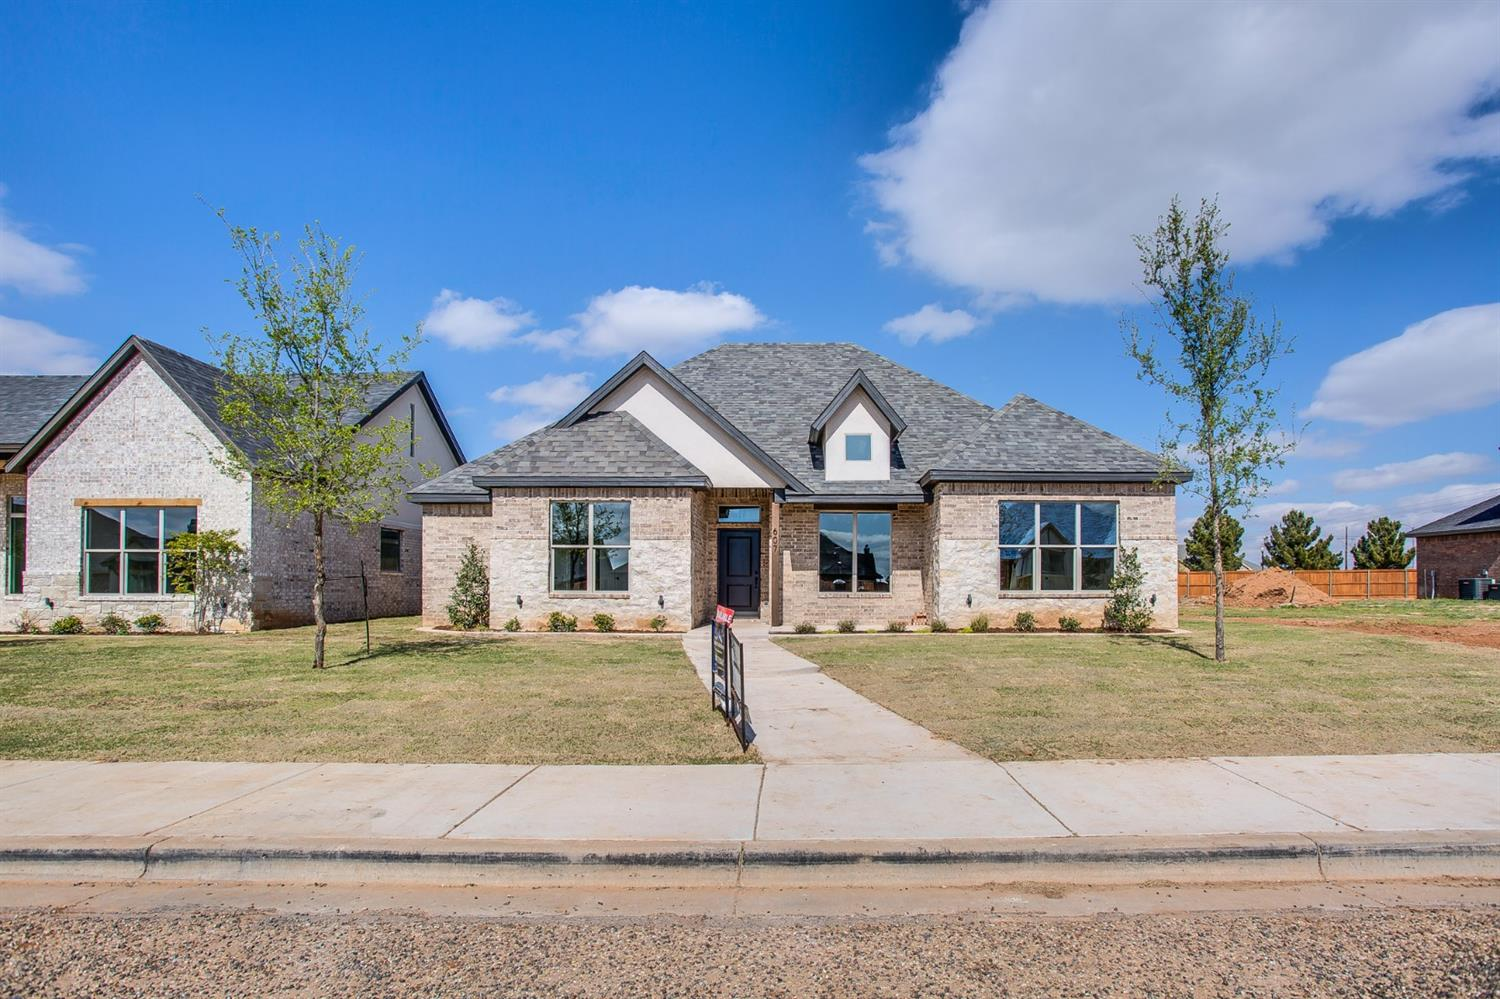 Gorgeous 3/3/2 in highly sought after Preston Manor by award winning Clearview Custom Homes! This amazing home features an open concept with a large island, gas in the kitchen, and storage lockers in the mud room! Go check it out today!